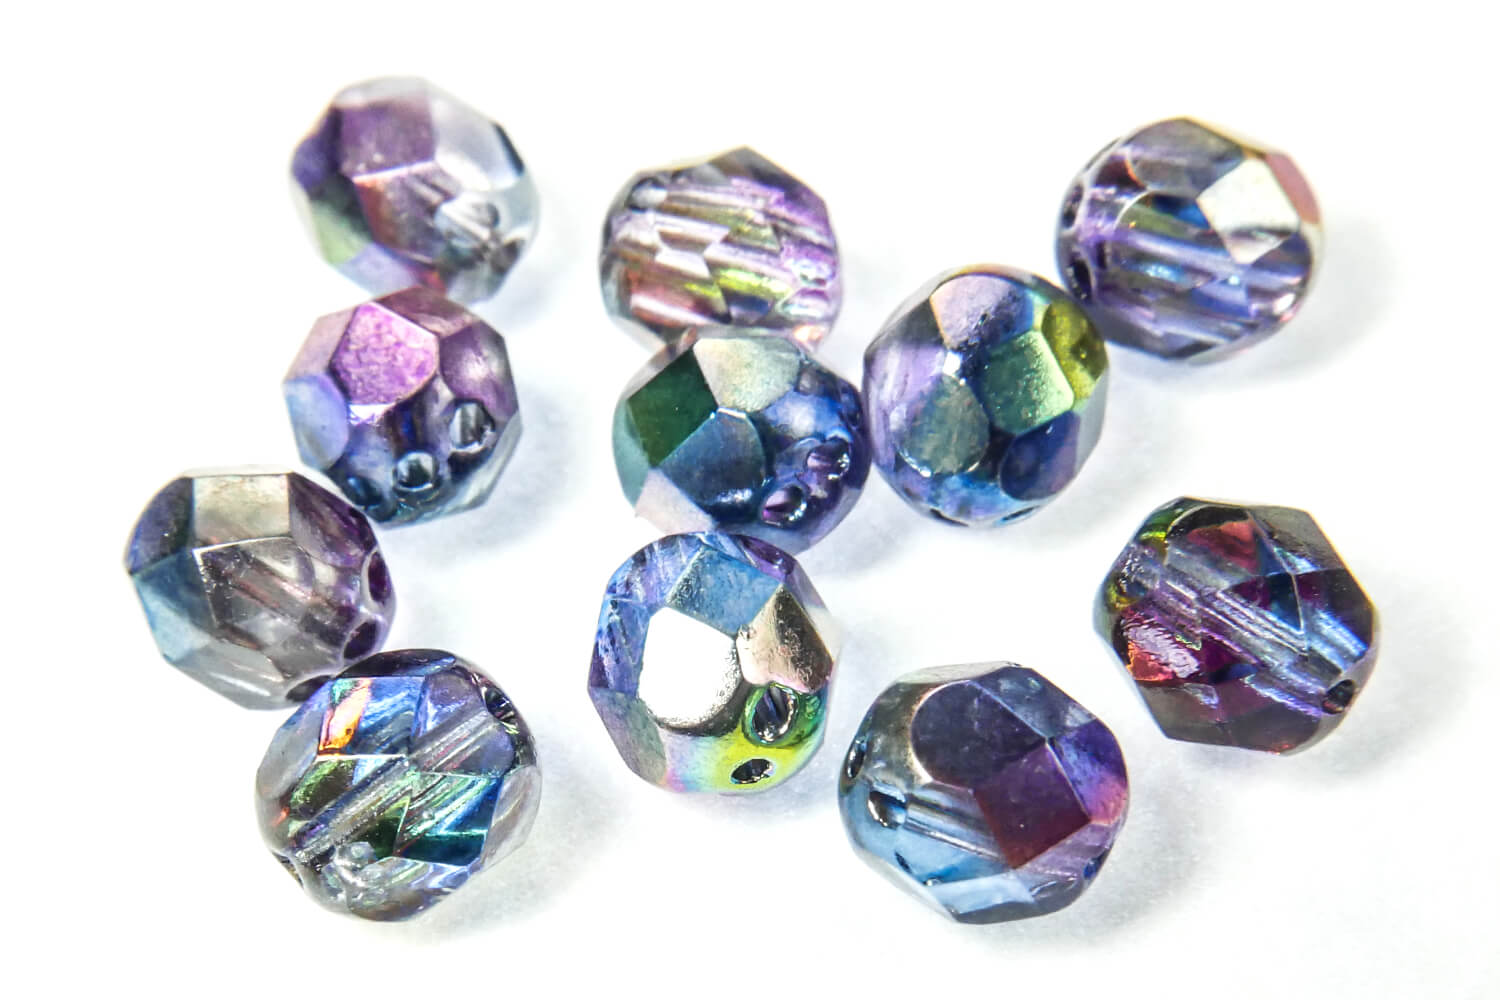 Potomac Exclusives / Potomac Exclusive Factory Packs / RounTrio® Faceted Beads Factory Packs